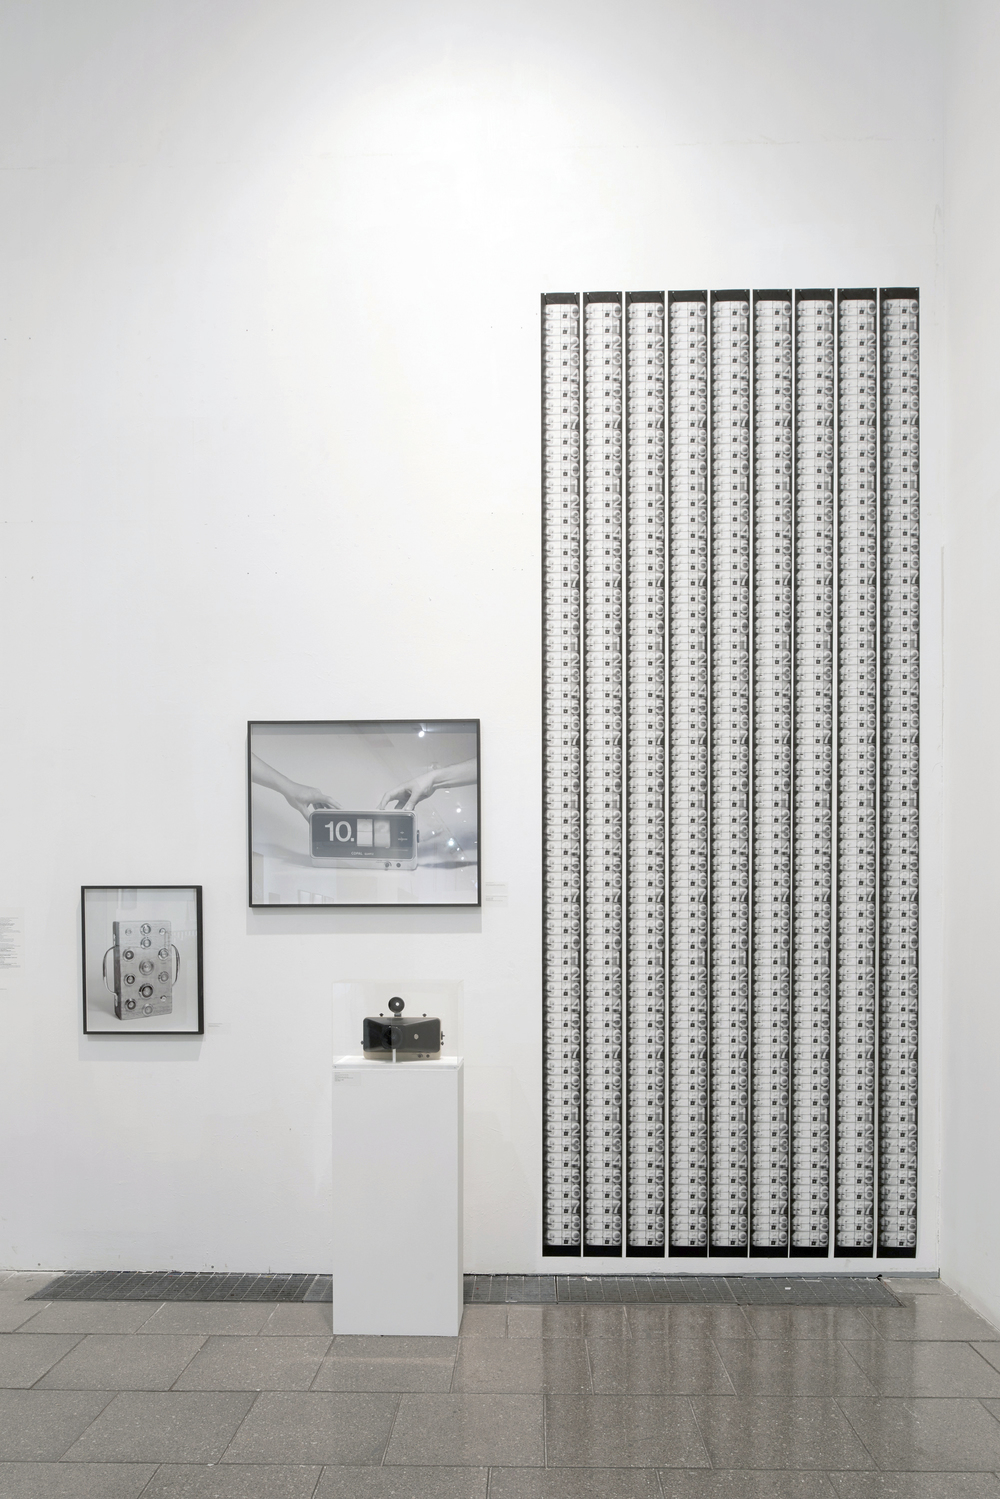 Kawara's Clock and its Prints